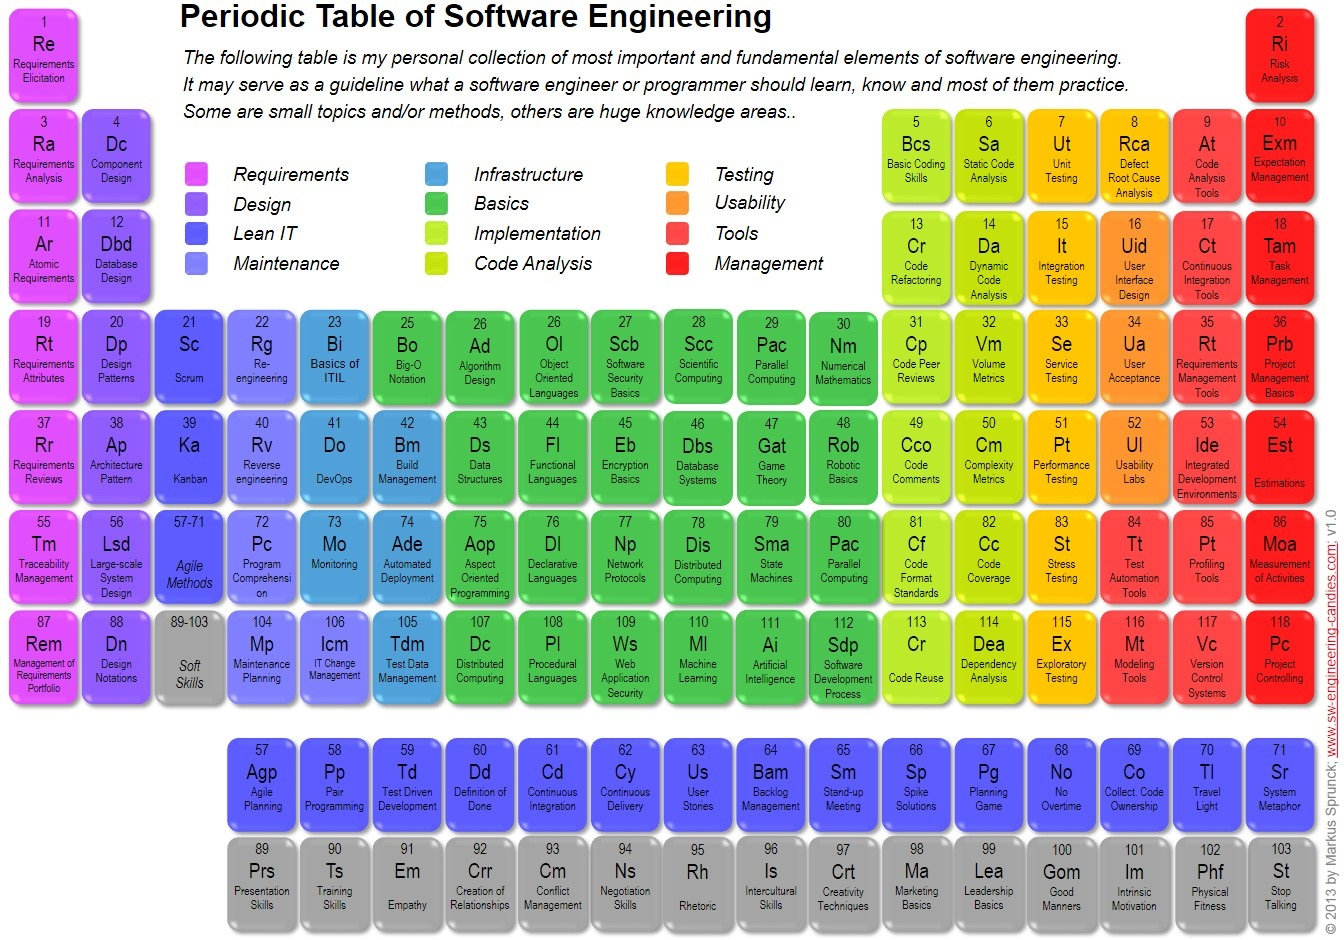 Periodic table of software engineering blog of leonid mamchenkov i came across this periodic table of software engineering and i think its an excellent visualization for those working their way to become software gamestrikefo Image collections